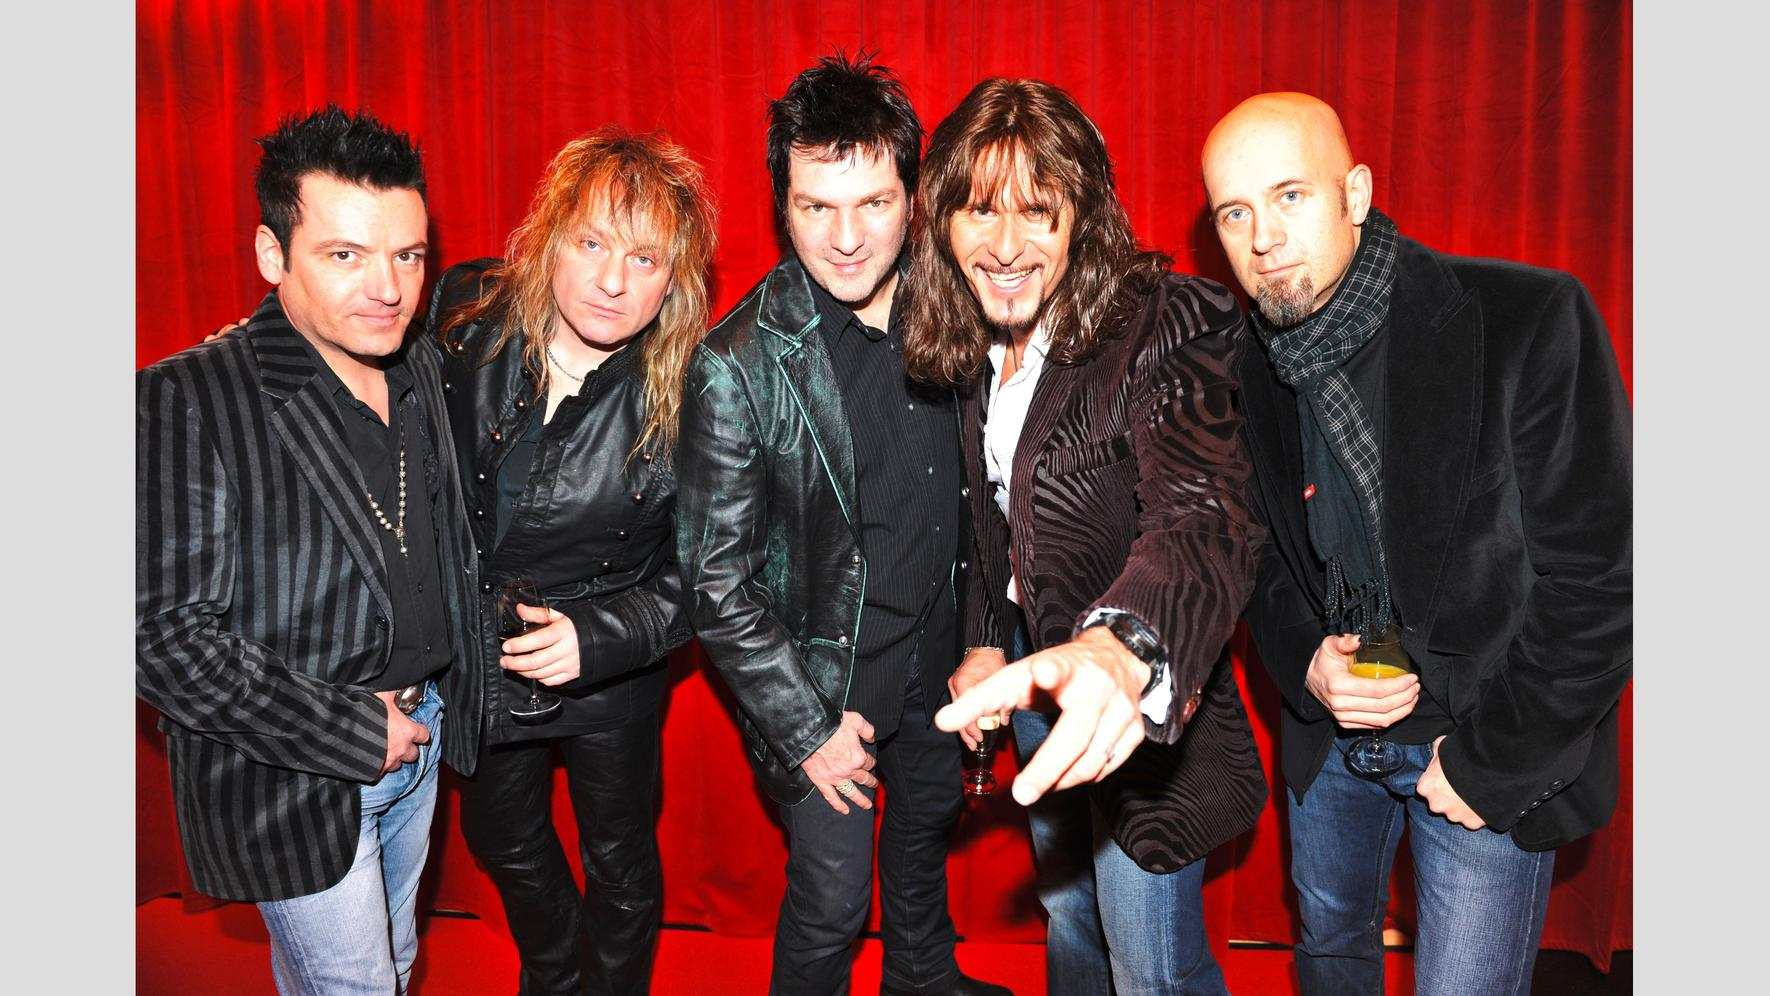 Die Tessiner Rock-Band Gotthard